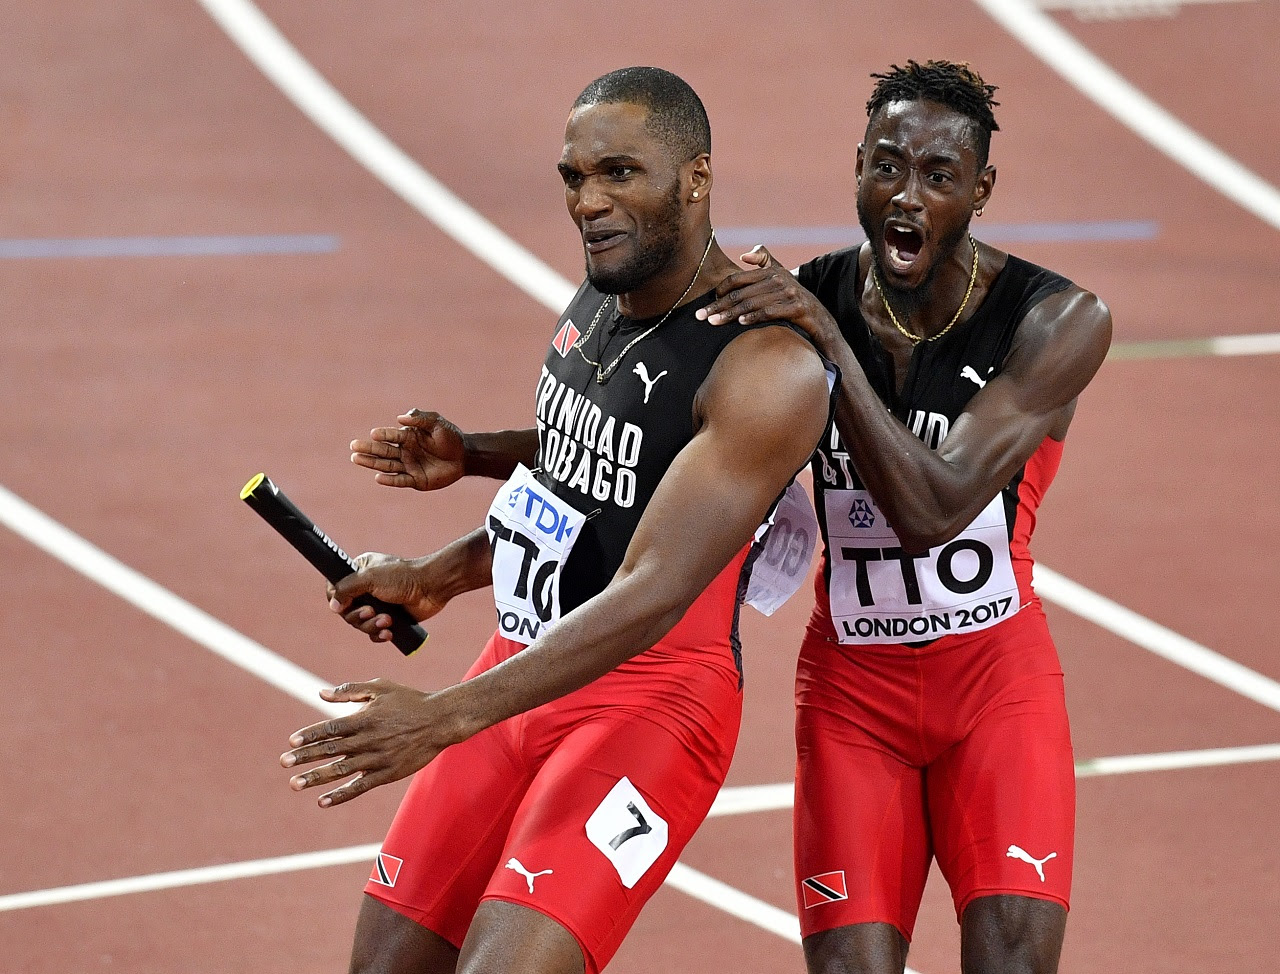 Image result for iaaf world championships 2017 4x400